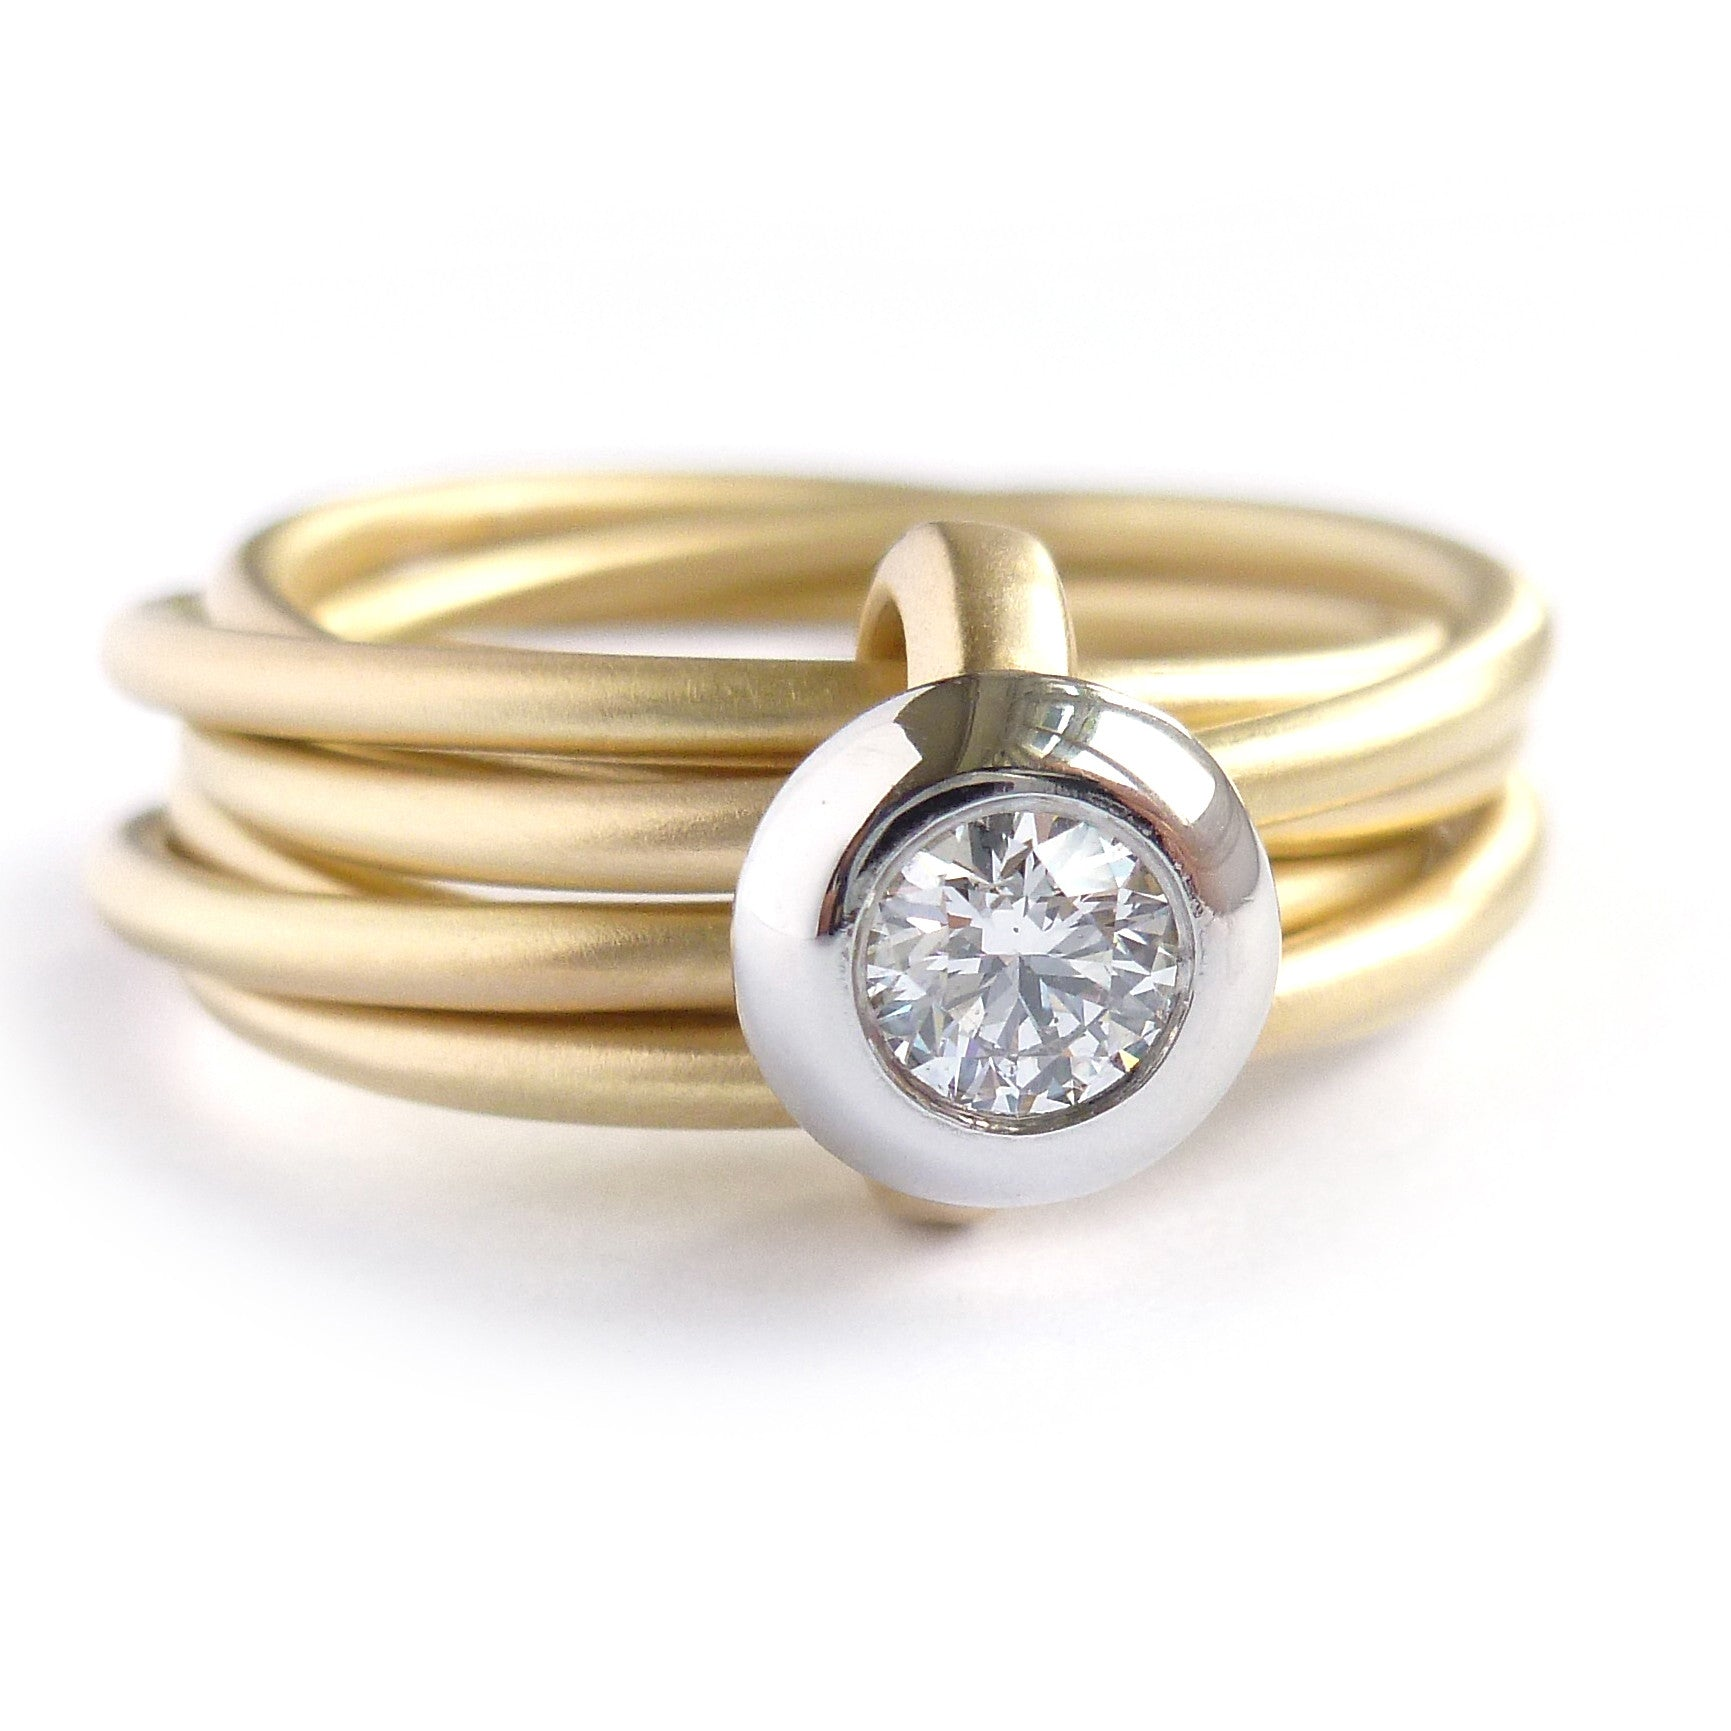 Contemporary Bands: 18k Gold And Diamond 6 Band Ring (rd15